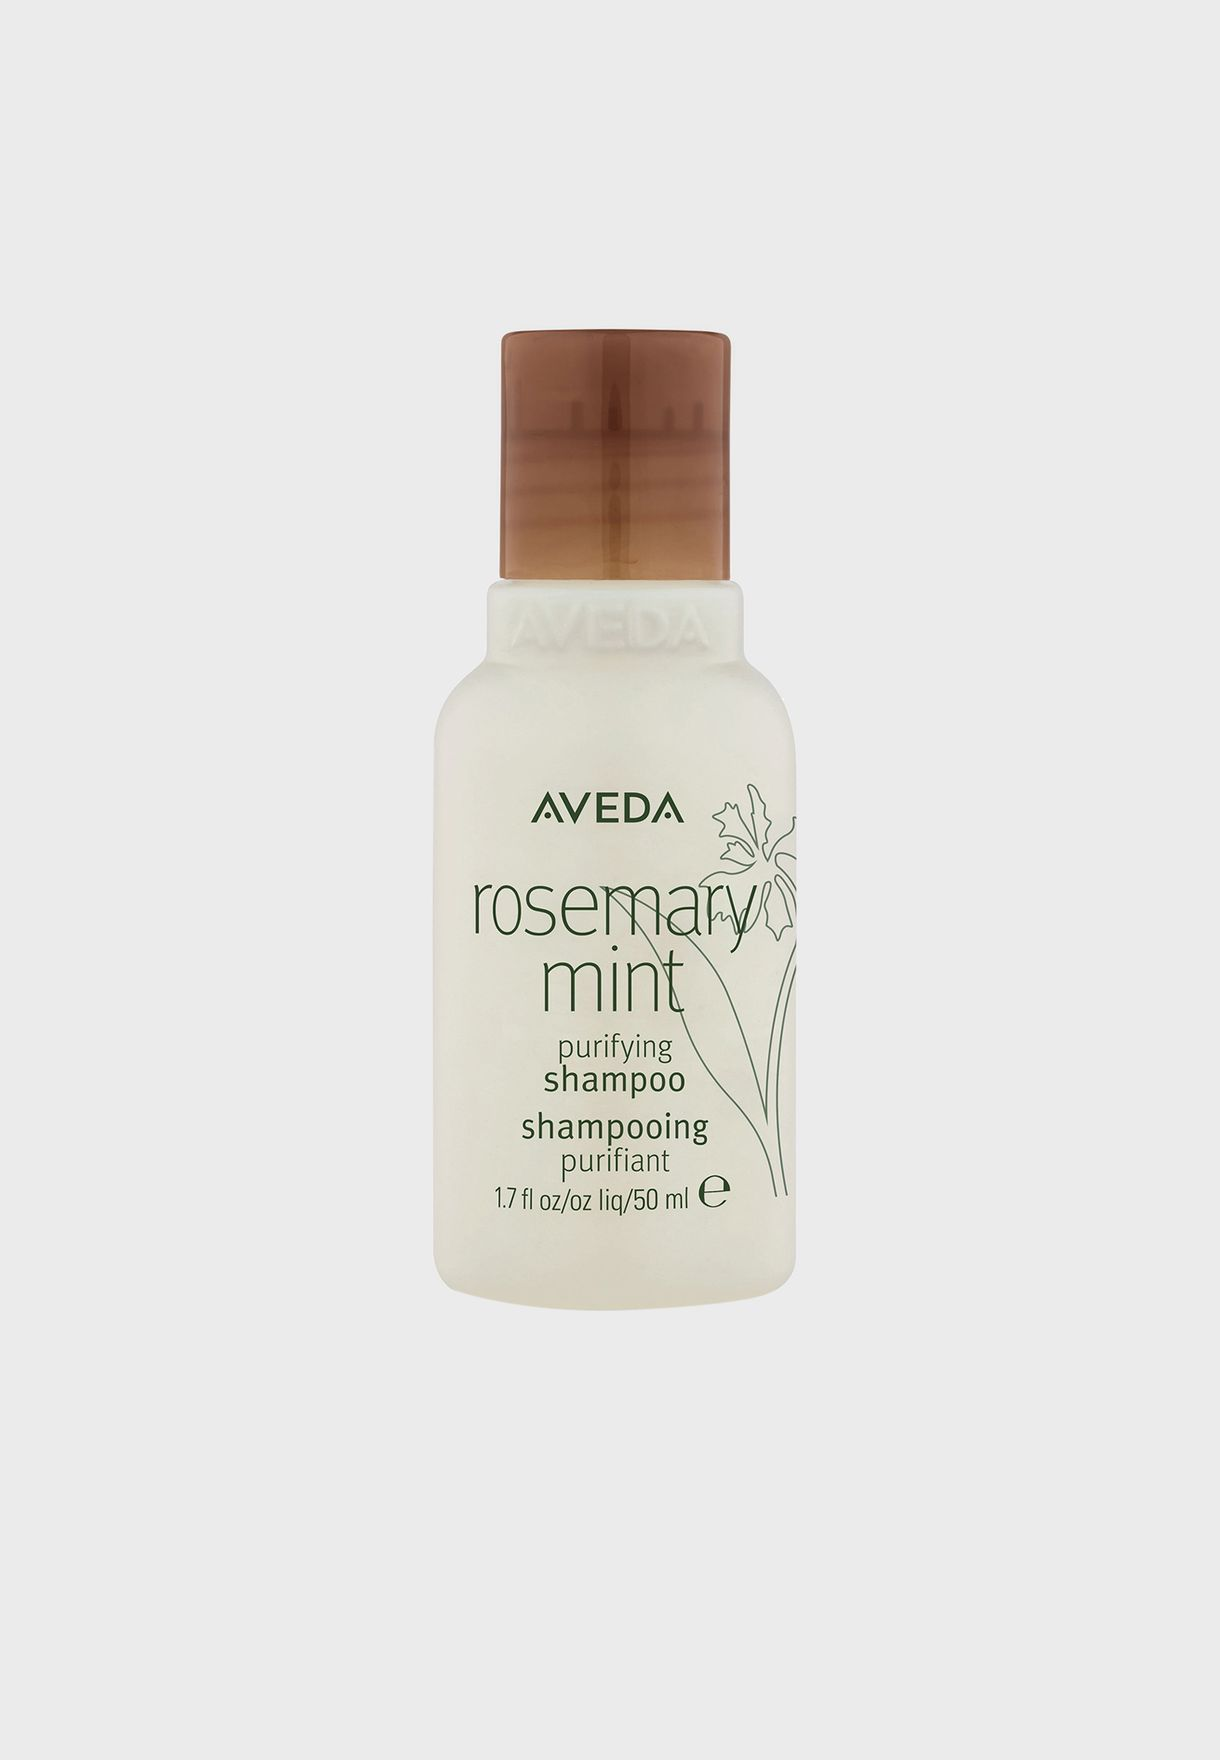 Rosemary mint Purifying Shampoo 50ml